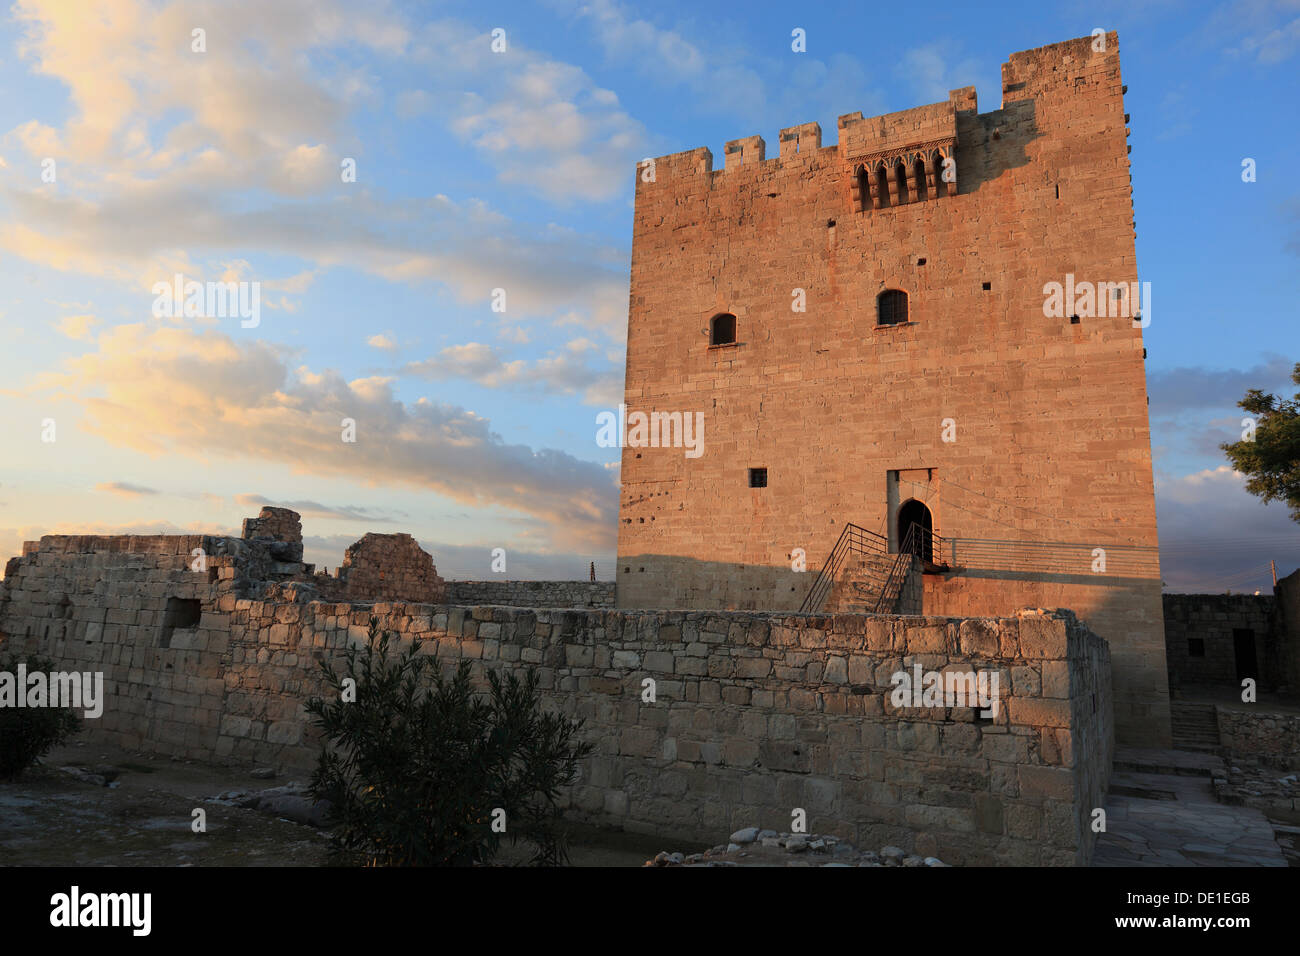 Cyprus Kolossi Castle is a stronghold outside the city of Limassol, Lemesos, Limassol, built in 1210 - Stock Image